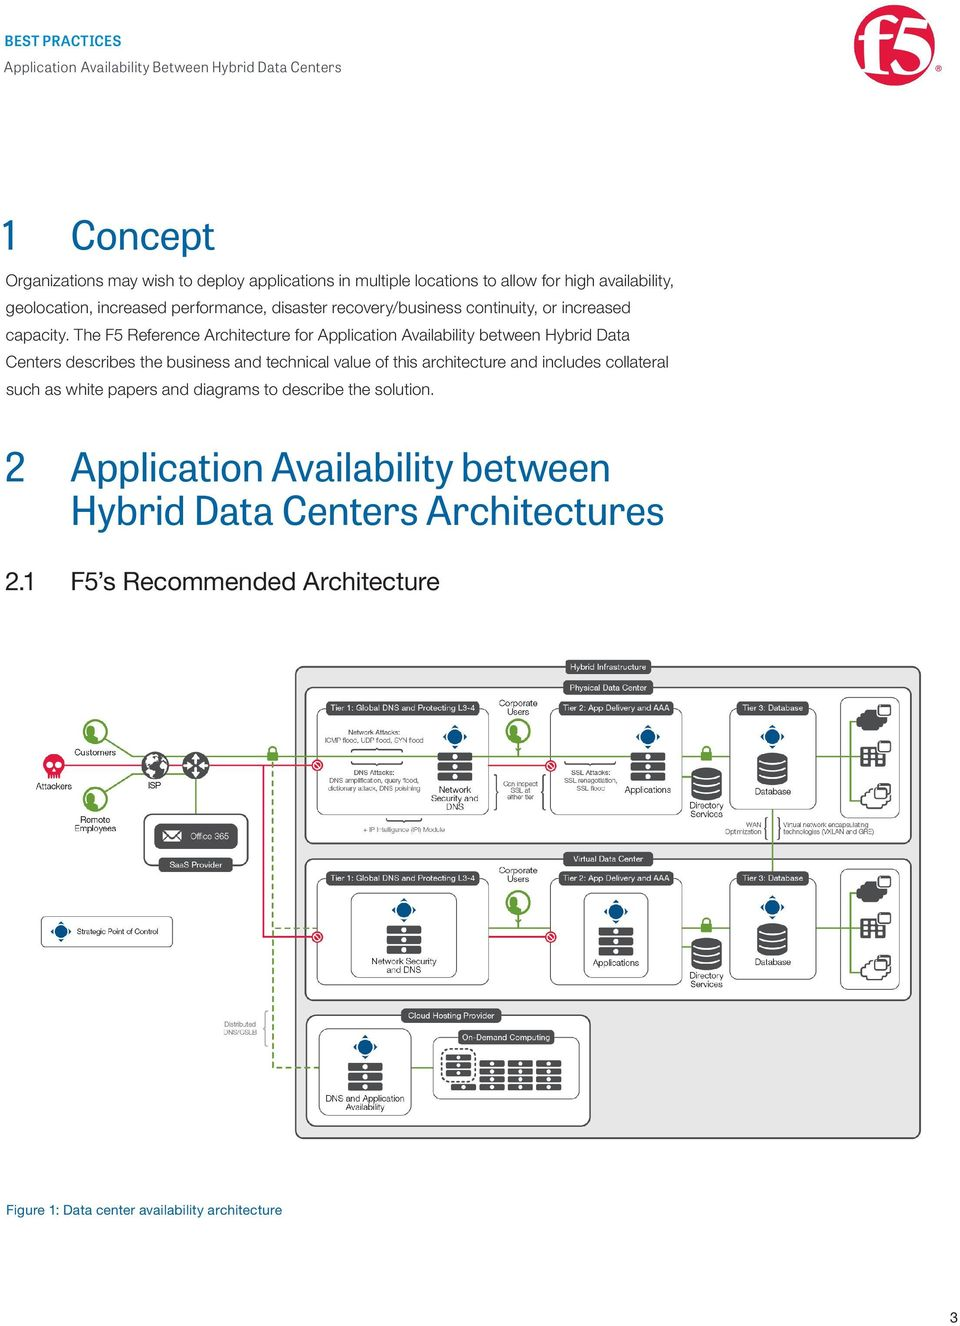 The F5 Reference Architecture for Application Availability between Hybrid Data Centers describes the business and technical value of this